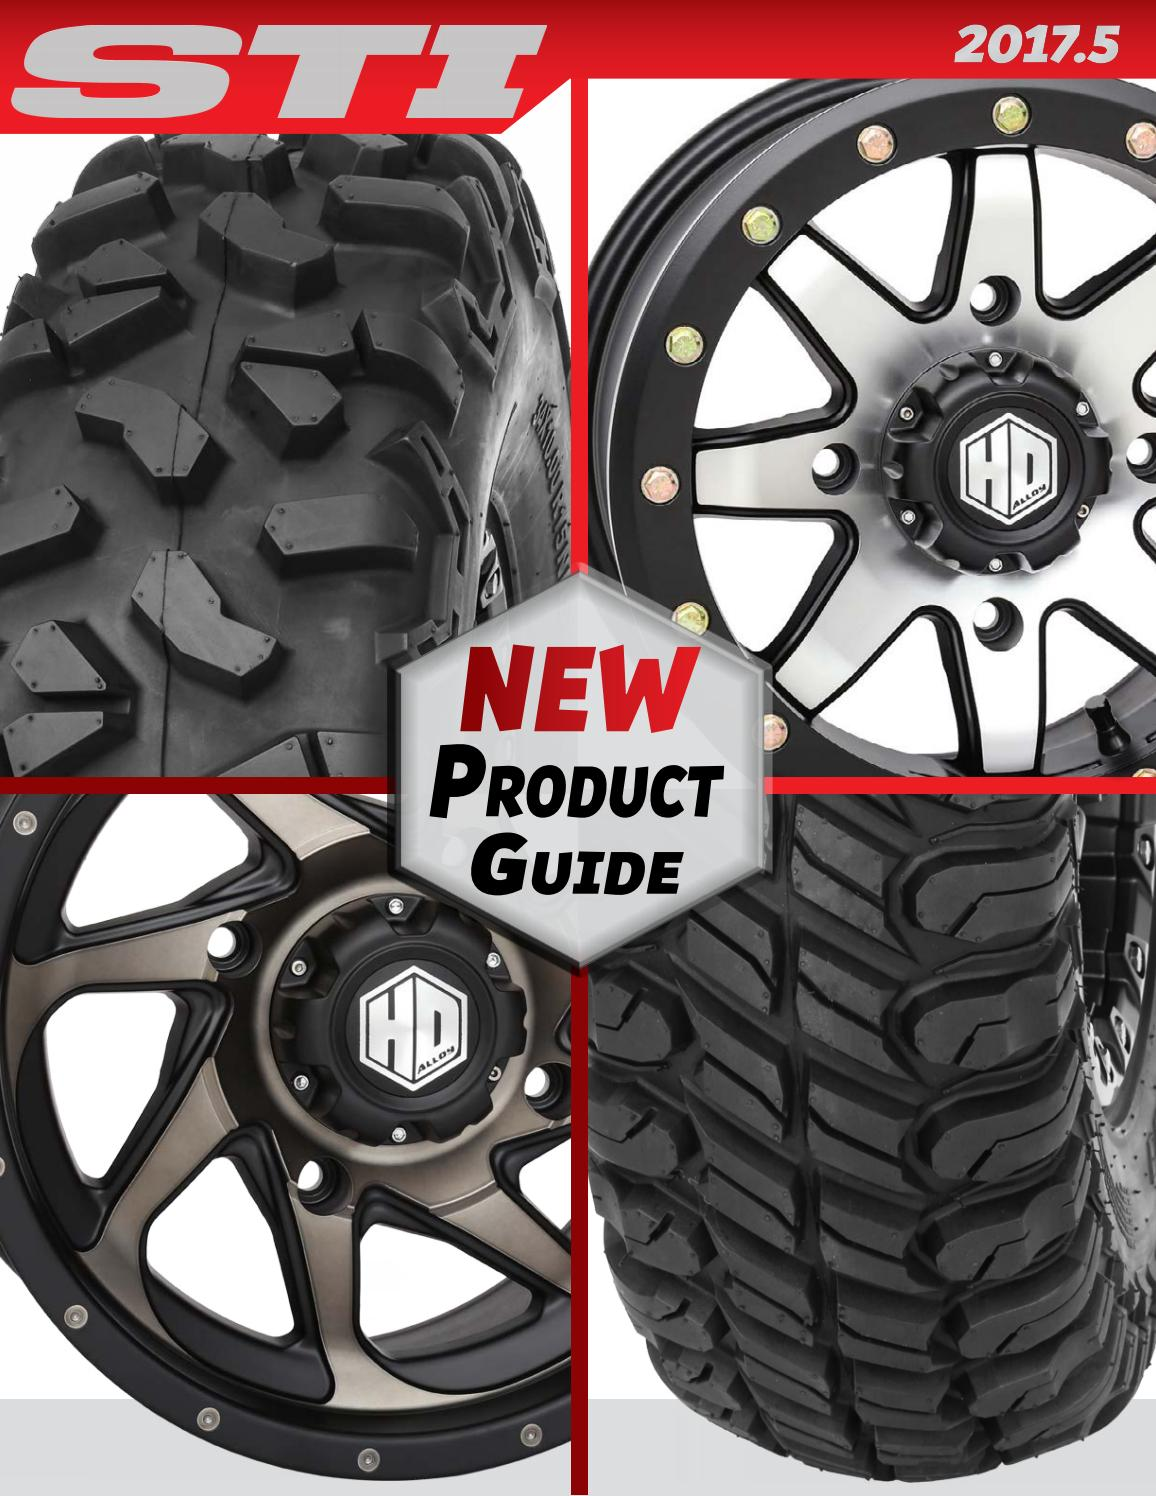 Sti 2017 5 New Product Guide By Sti Off Road Issuu